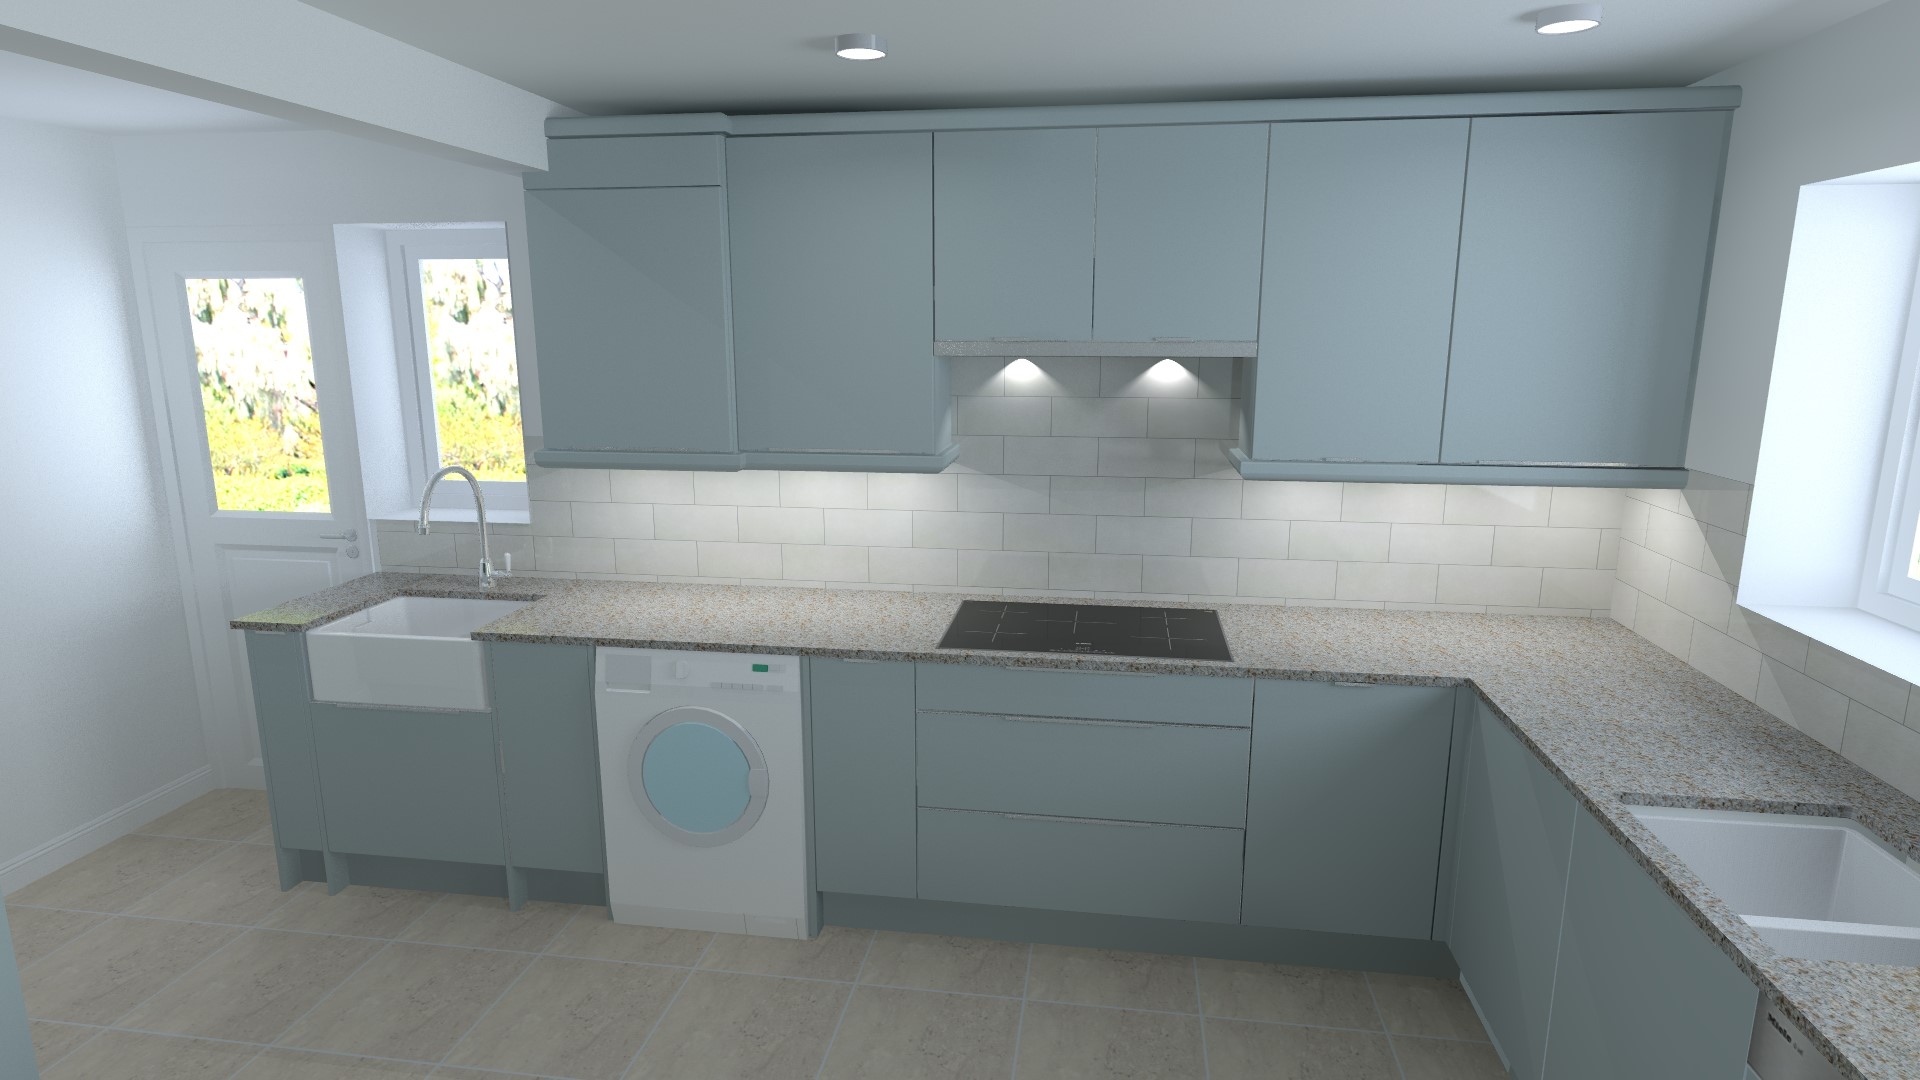 Mr and Mrs Hill Final Revised Kitchen Layout View 1.jpg